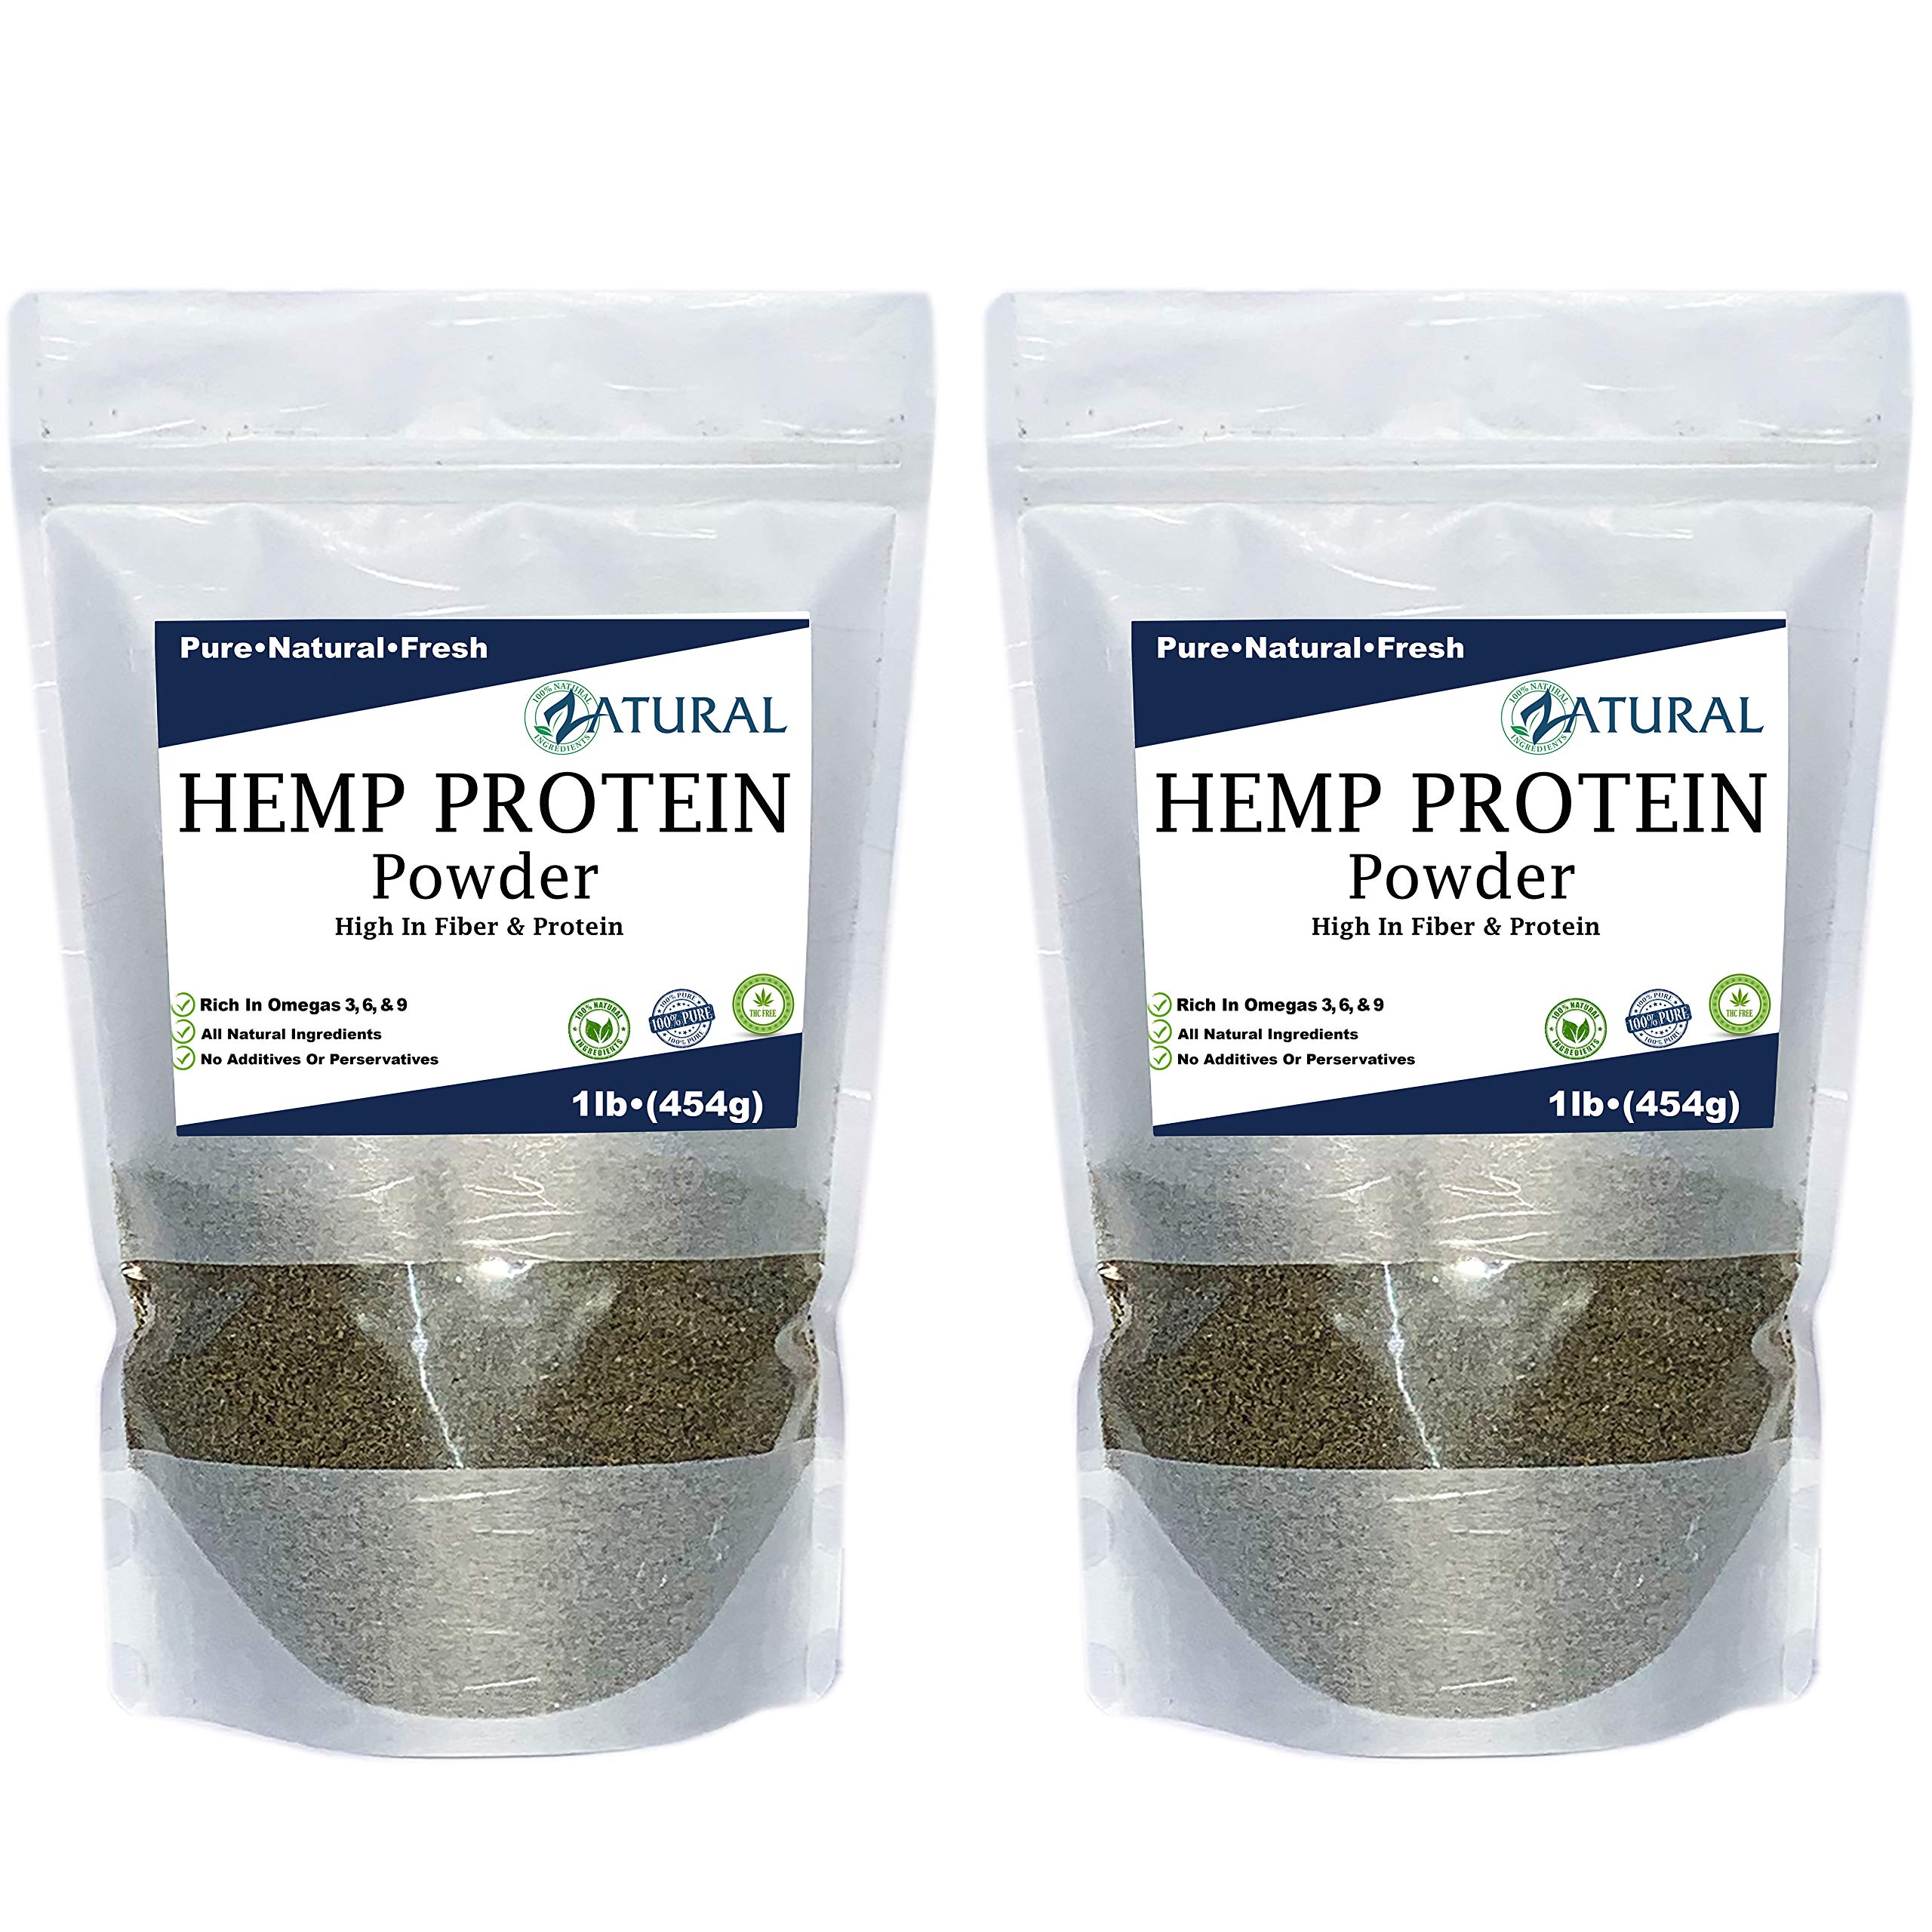 100% Pure Hemp Protein - Canadian farmed - All Natural - High Protein - High Fiber (2 Pounds)